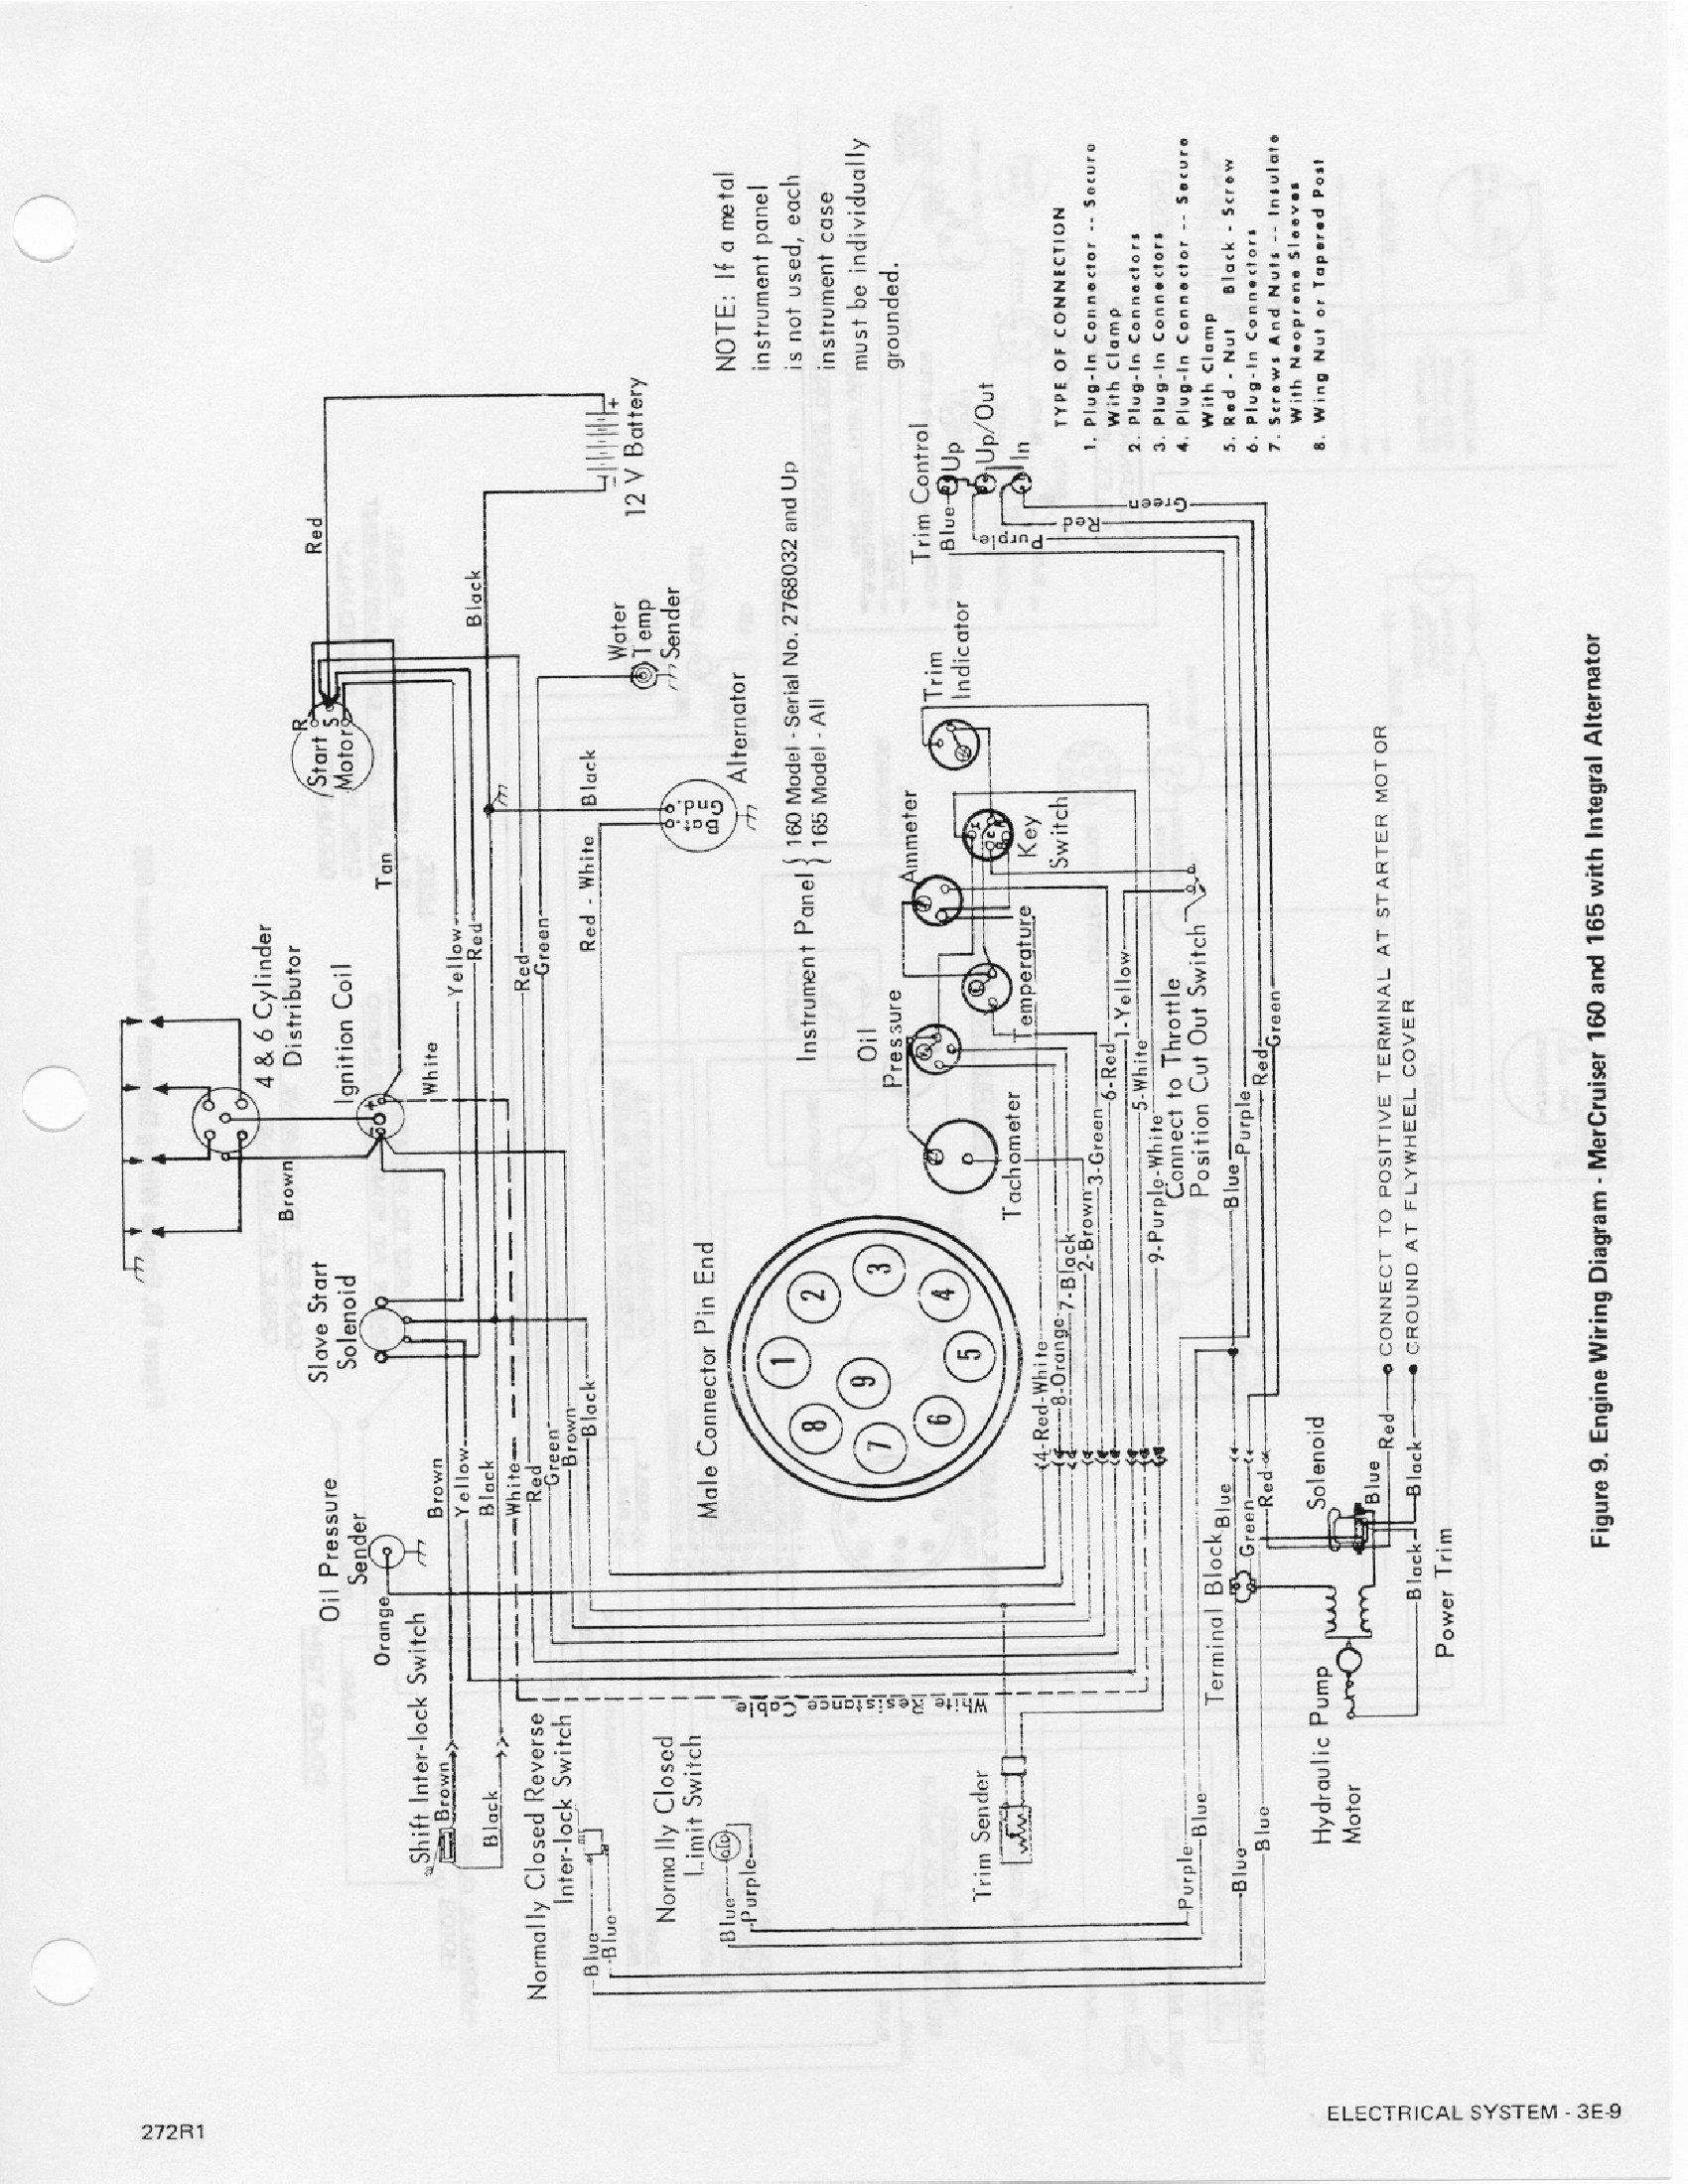 Mercruiser Electrical Diagrams Starting Know About Wiring Diagram 5425 John Deere Solenoid 160 Simple Rh David Huggett Co Uk